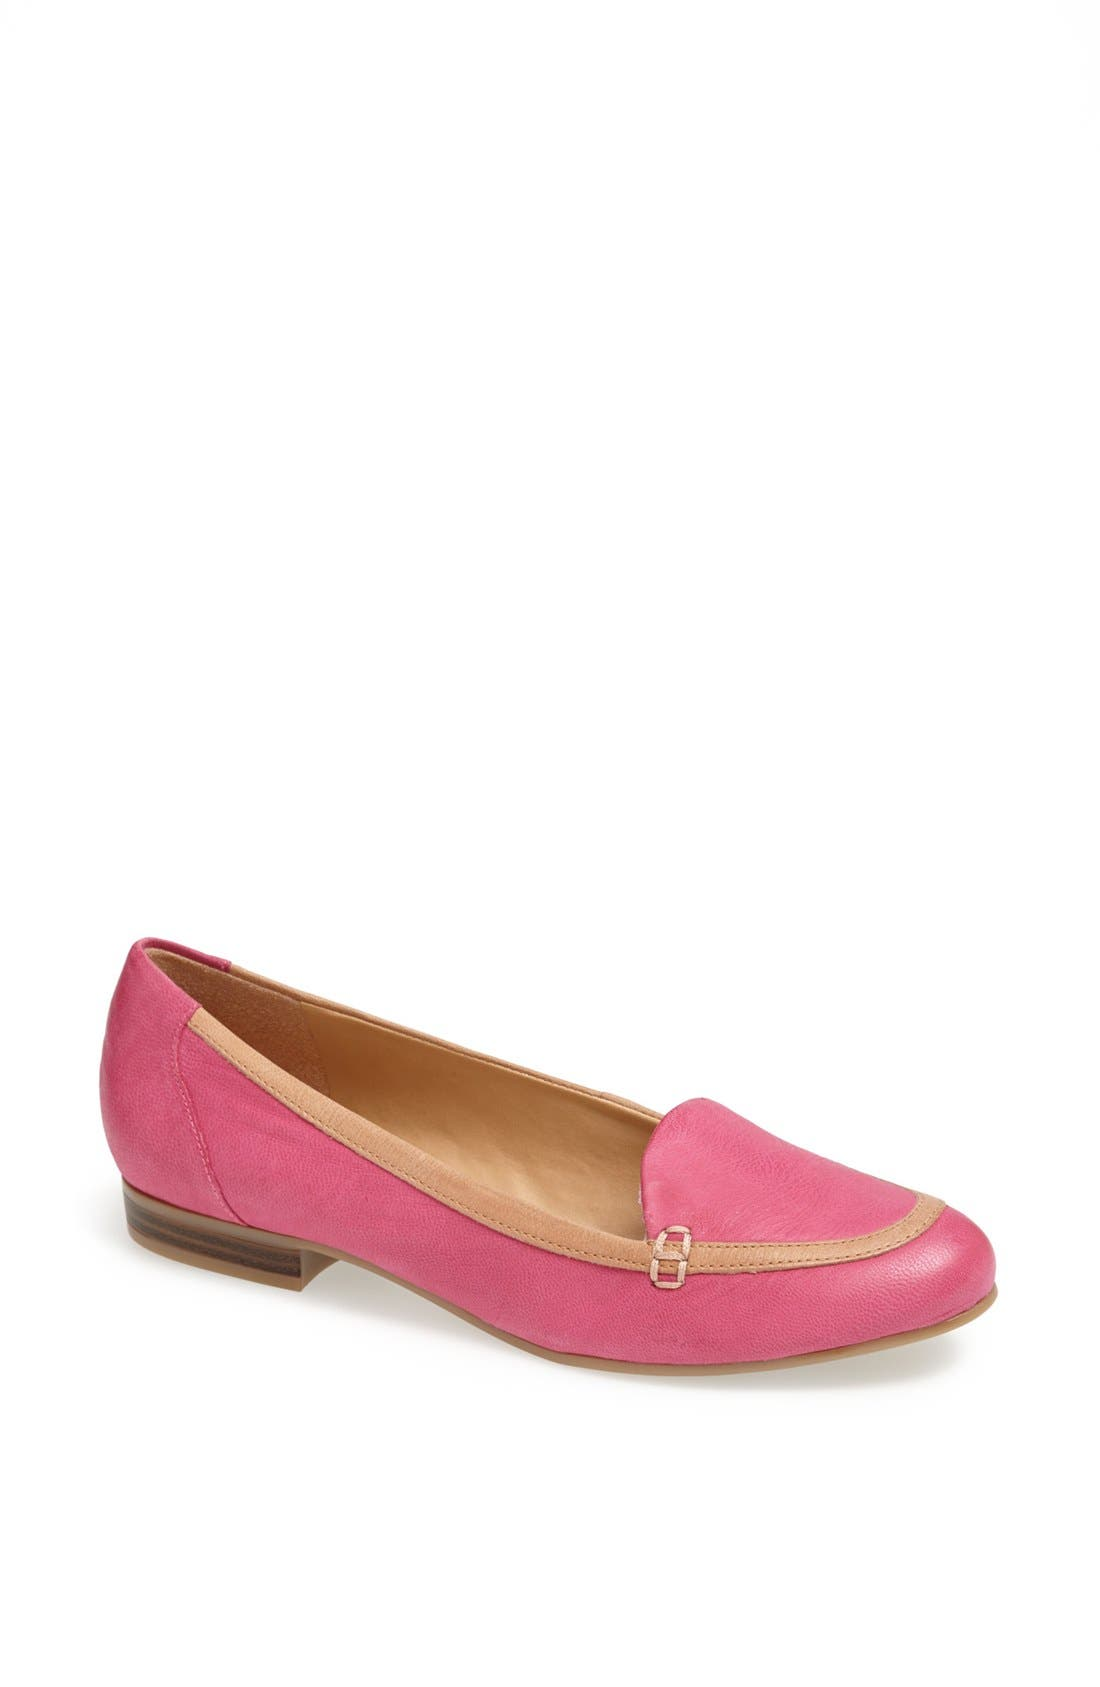 Main Image - Naturalizer 'Lancelot' Leather Flat